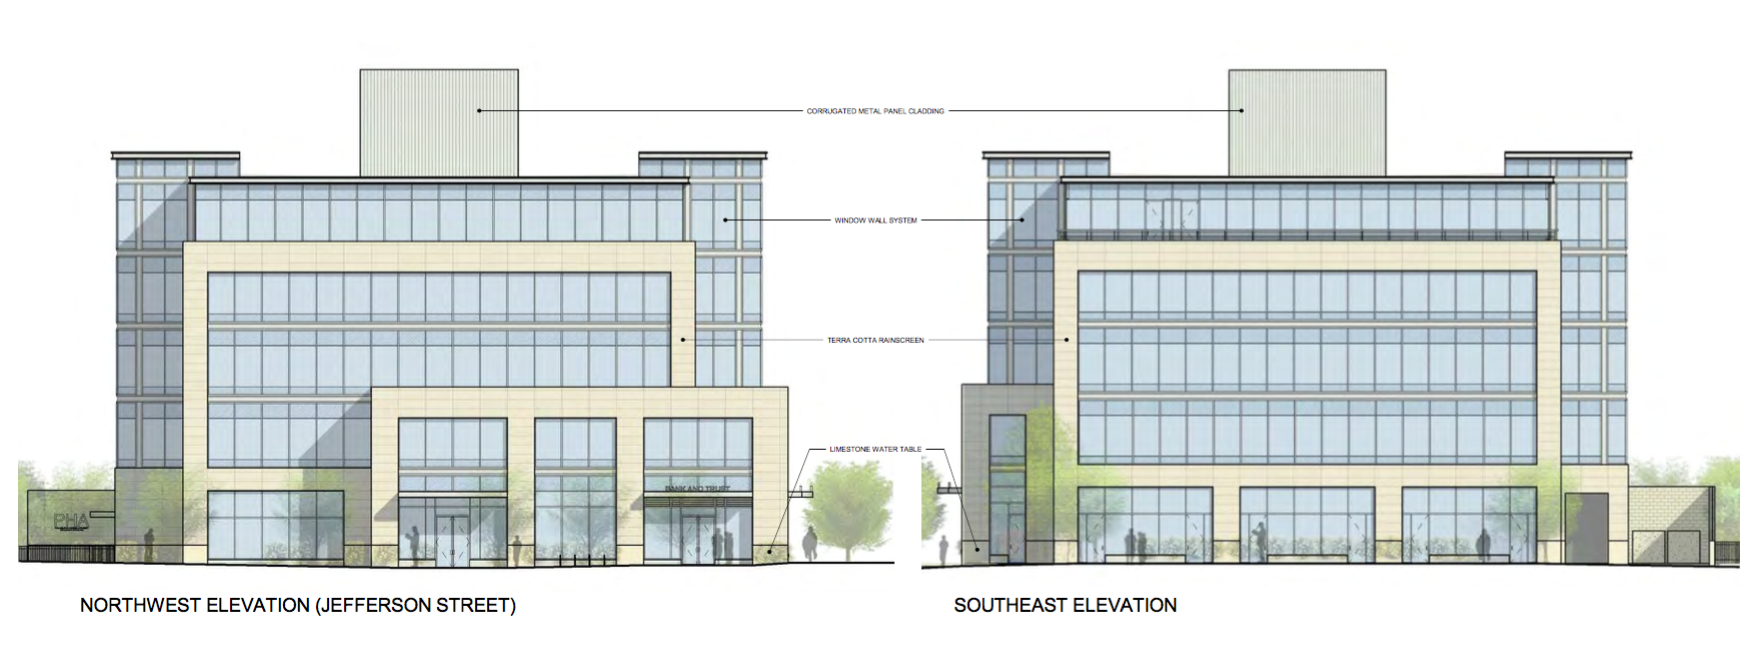 PHA Headquarters: Northwest and Southeast Elevations| BLTa, CDR presentation, Sept. 2016